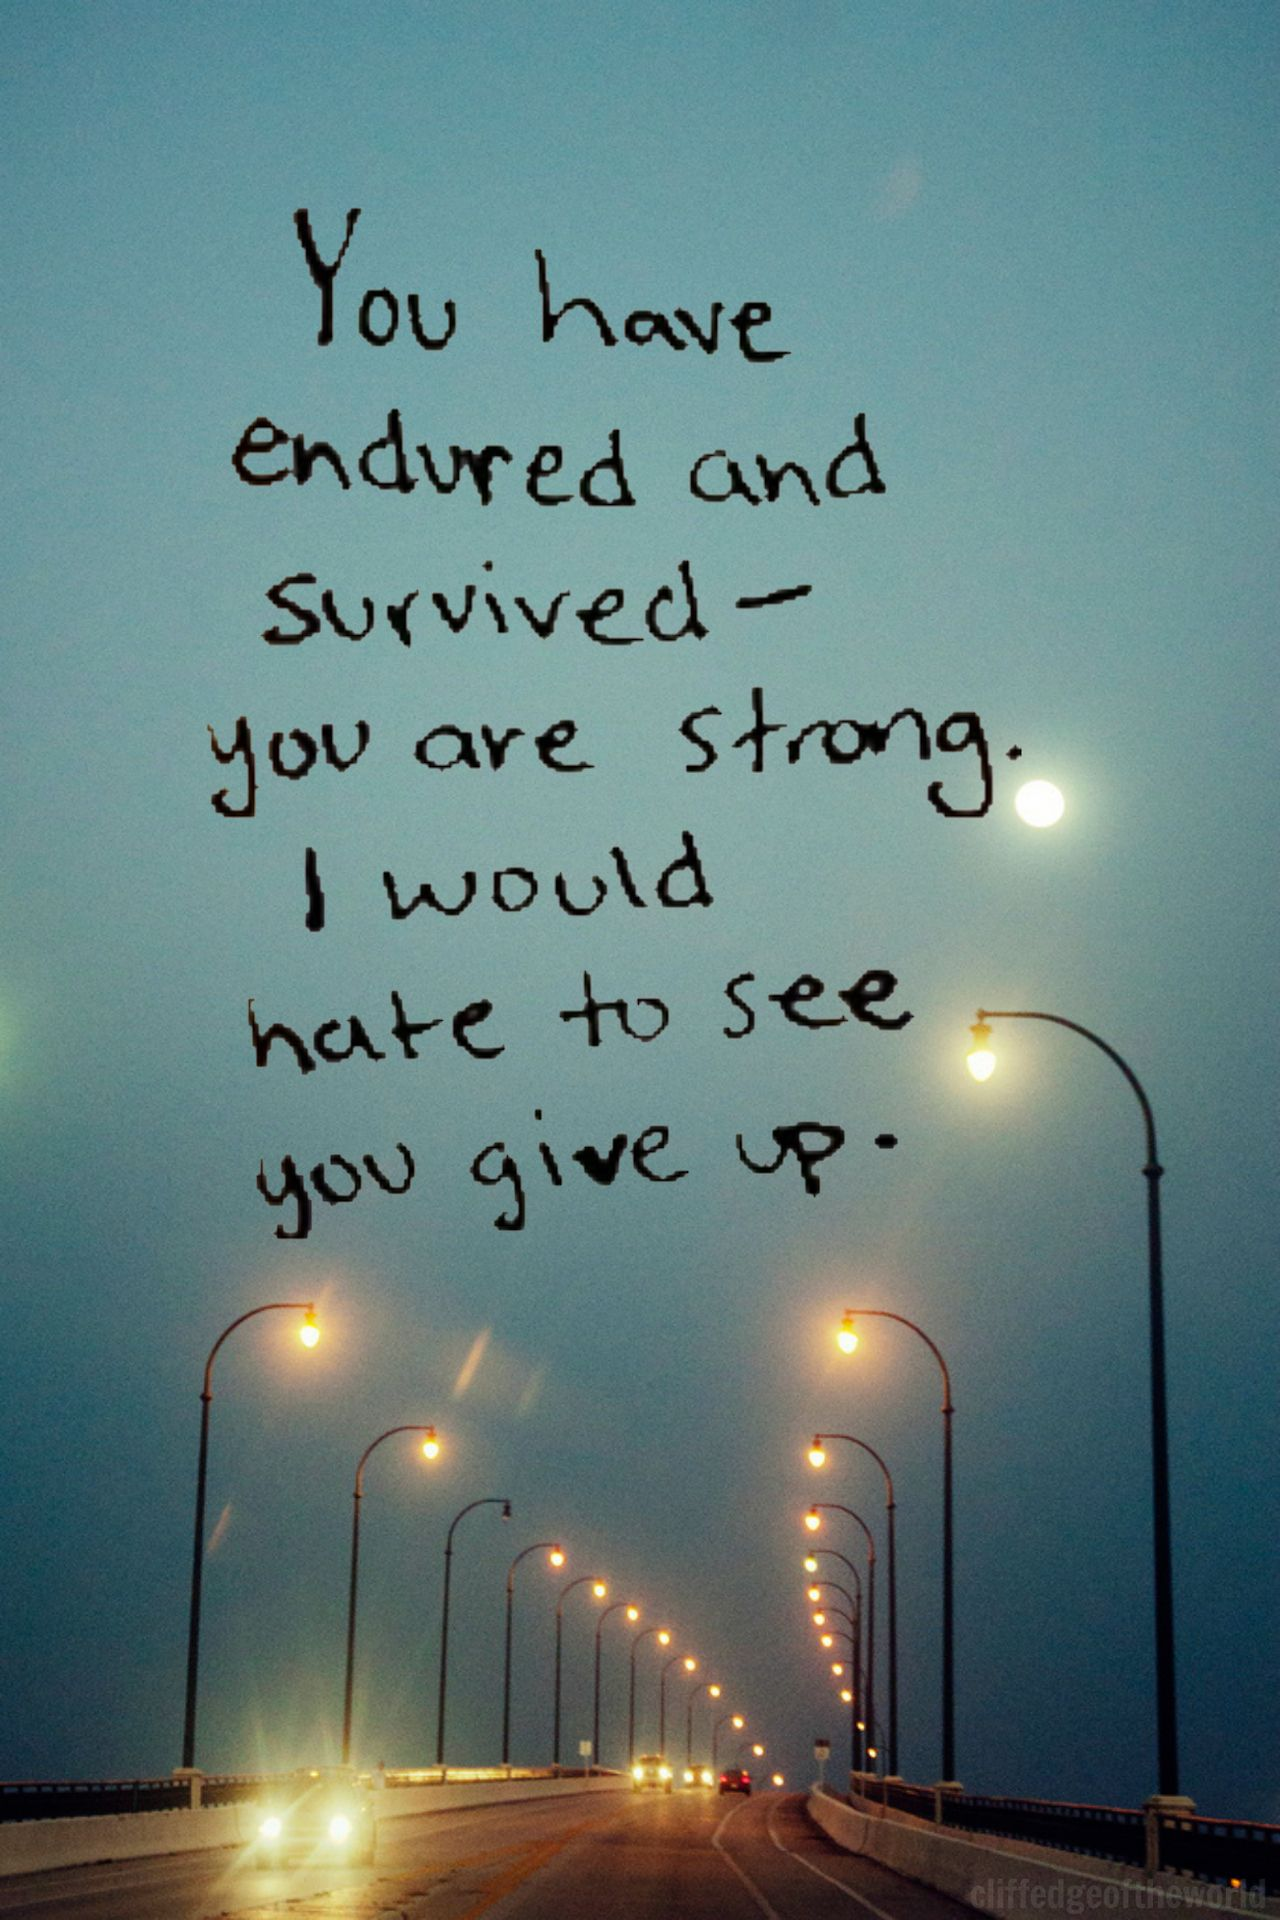 You have endured and survived - you are strong. I would hate to see you give up...